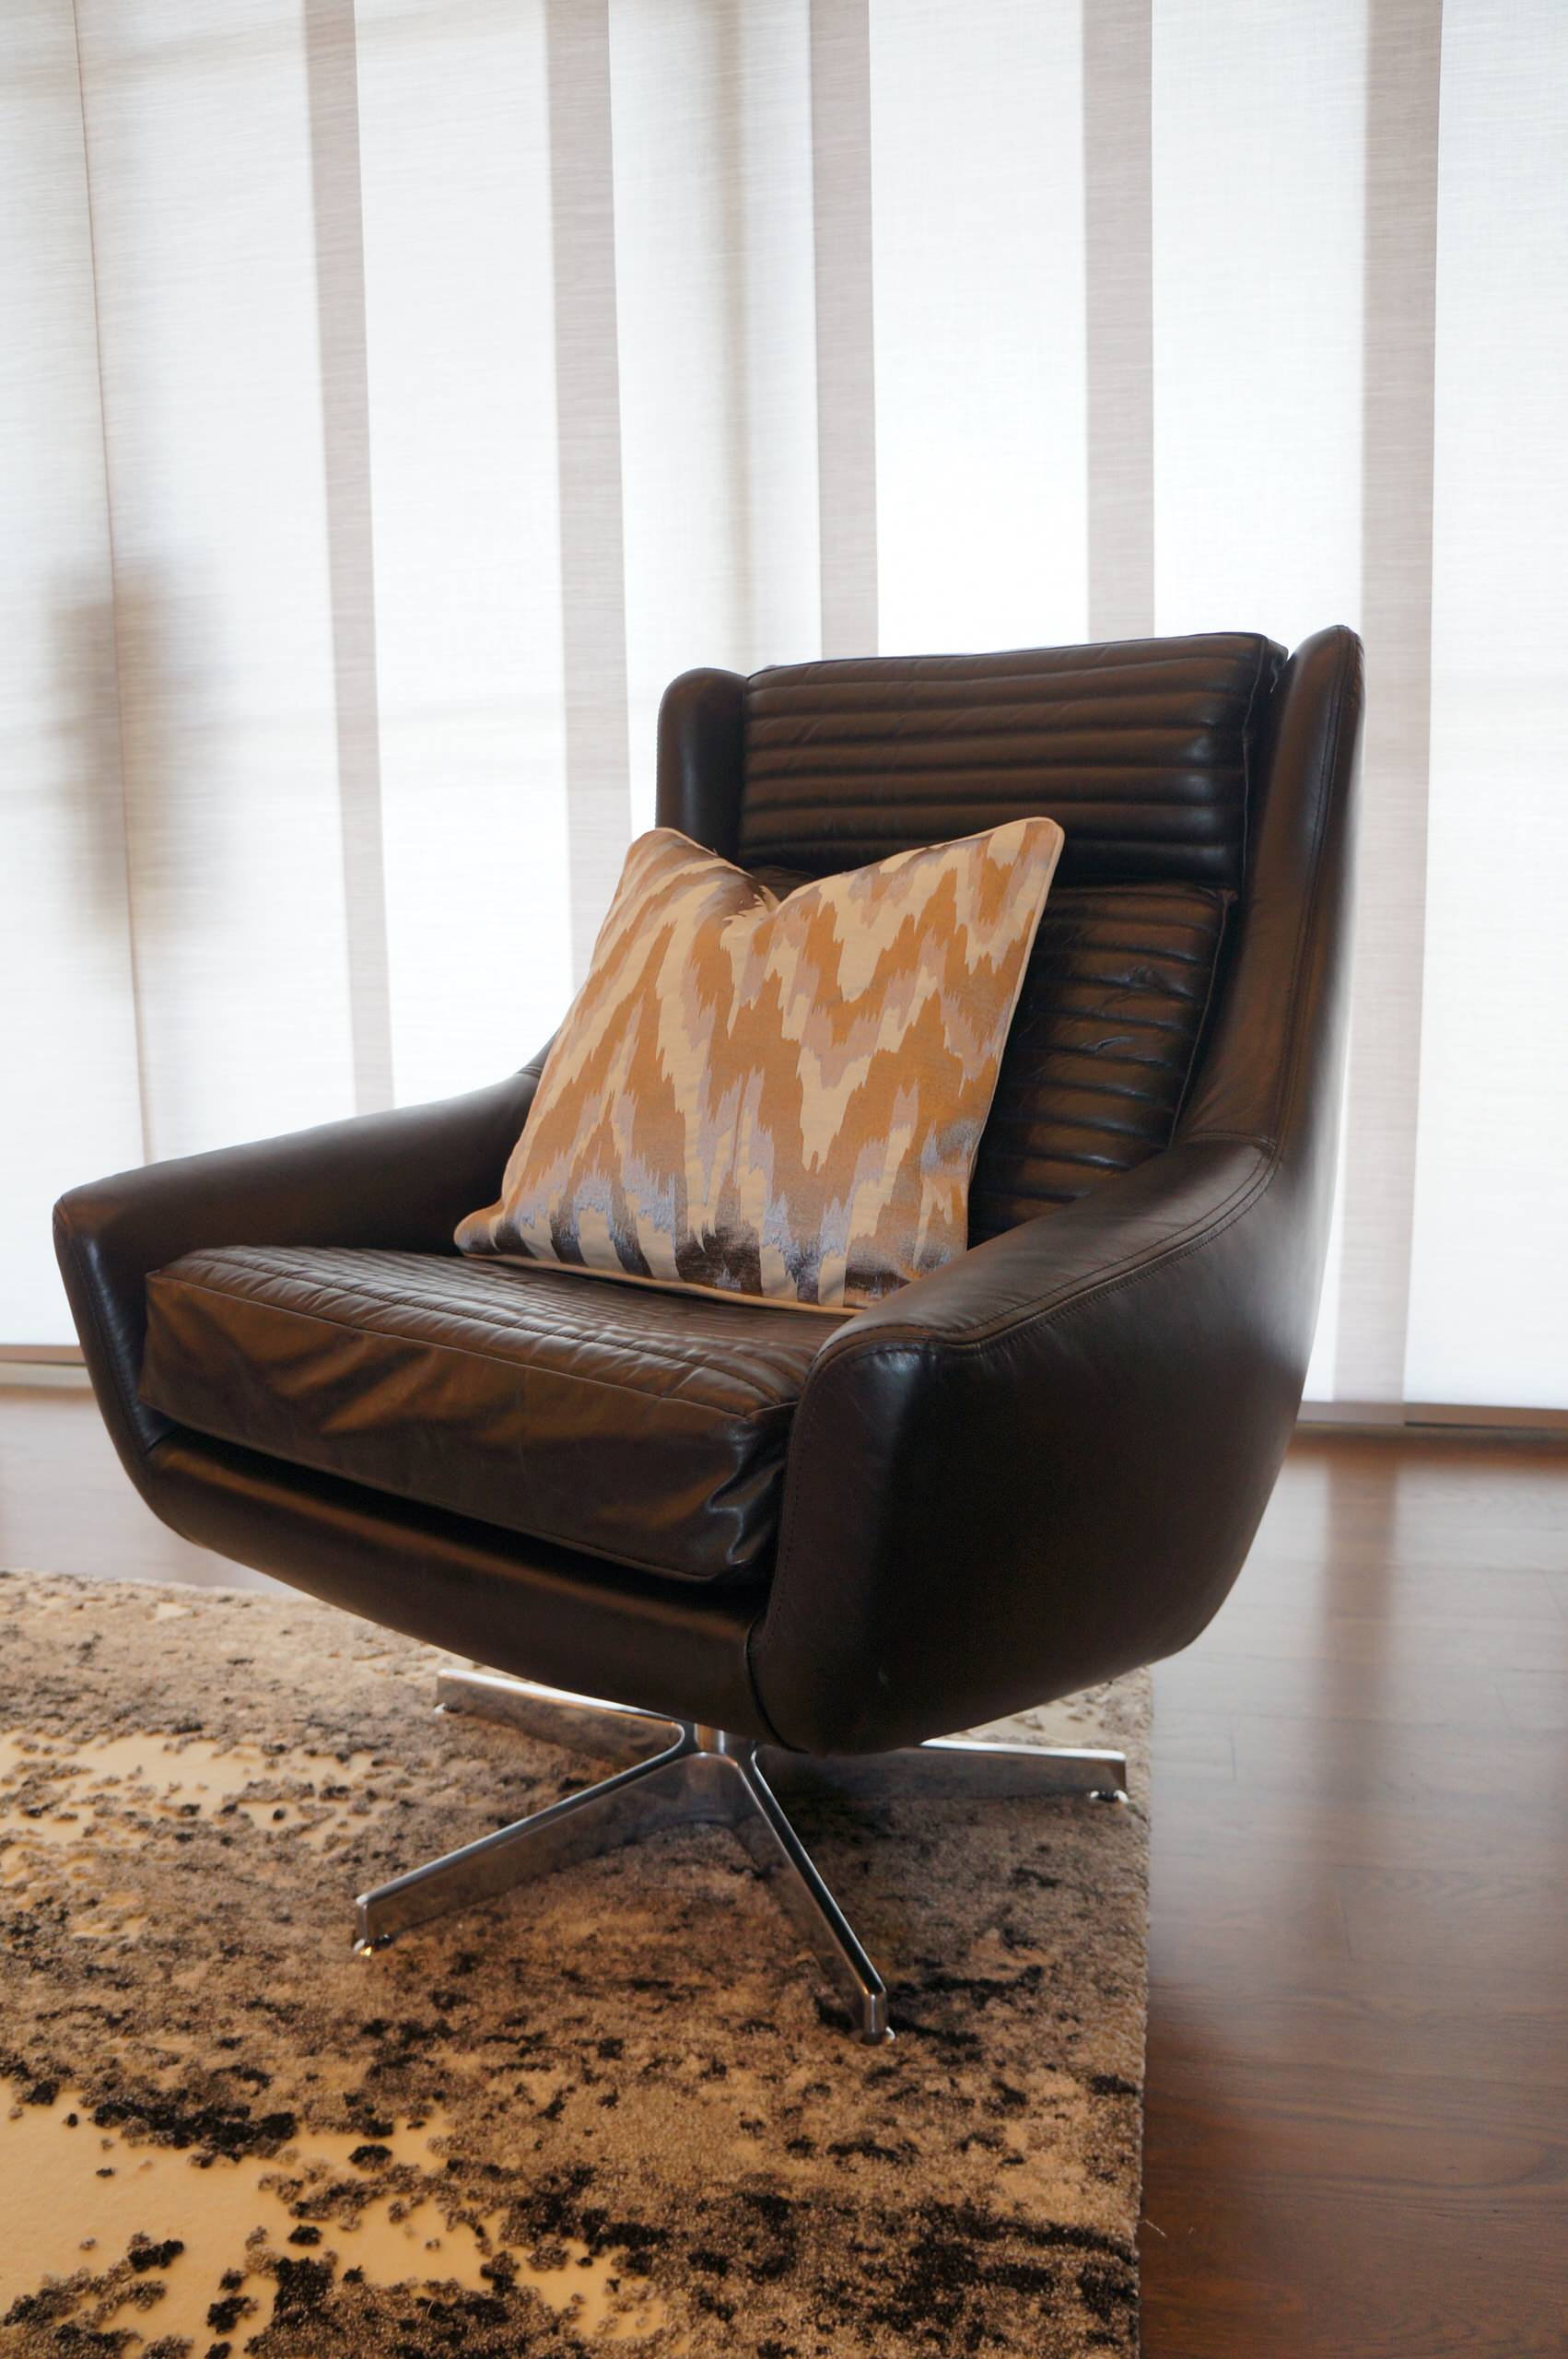 Leather swivel chair in main living area